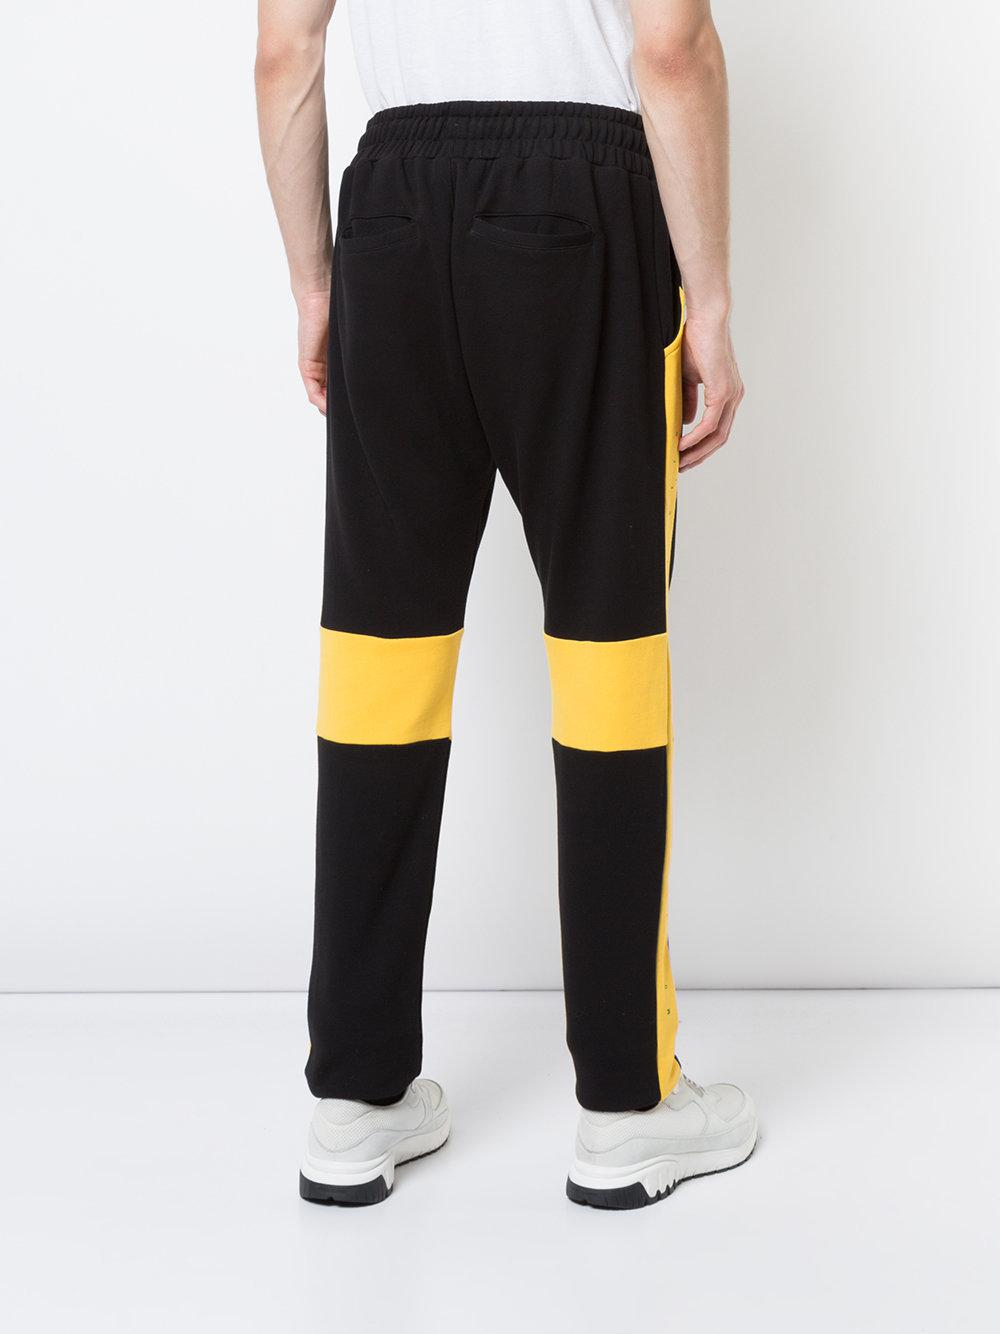 Cut Here track trousers - Black Mostly Heard Rarely Seen Clearance Eastbay For Sale Visit For Sale Sale Huge Surprise Clearance Online Ebay vo9NWdb